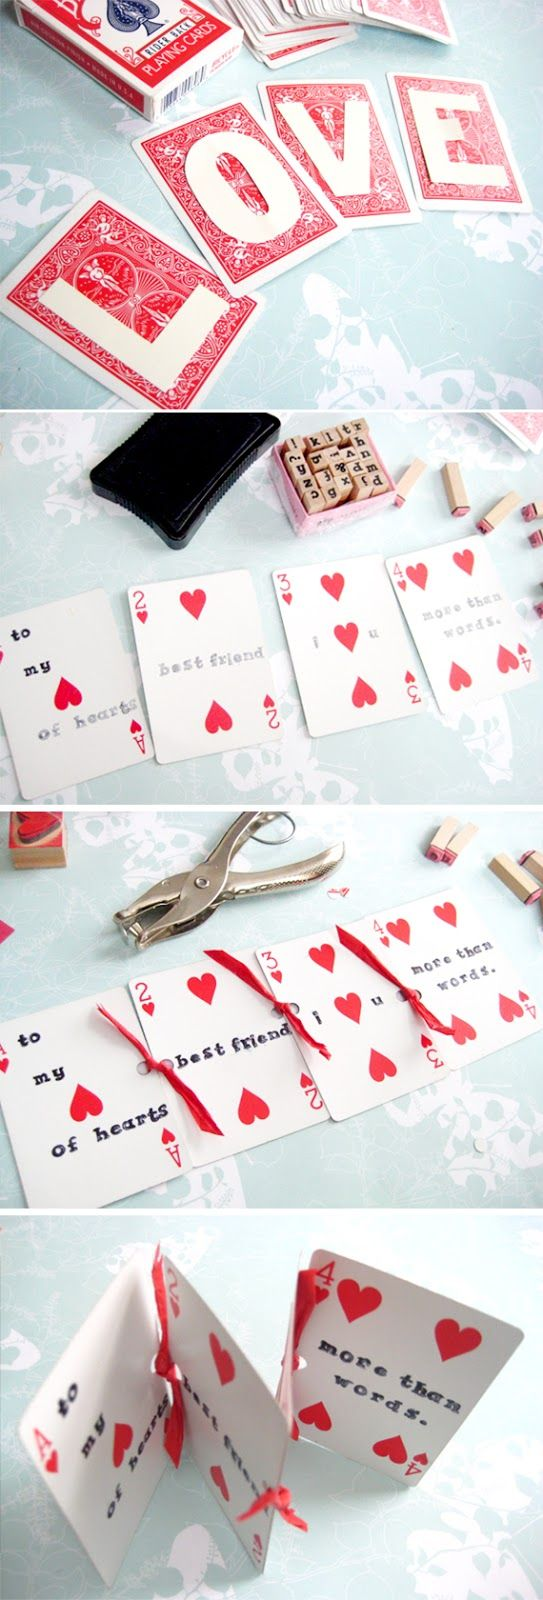 DIY Playing Card Message Valentines In Honor Of Design – Valentine Playing Cards